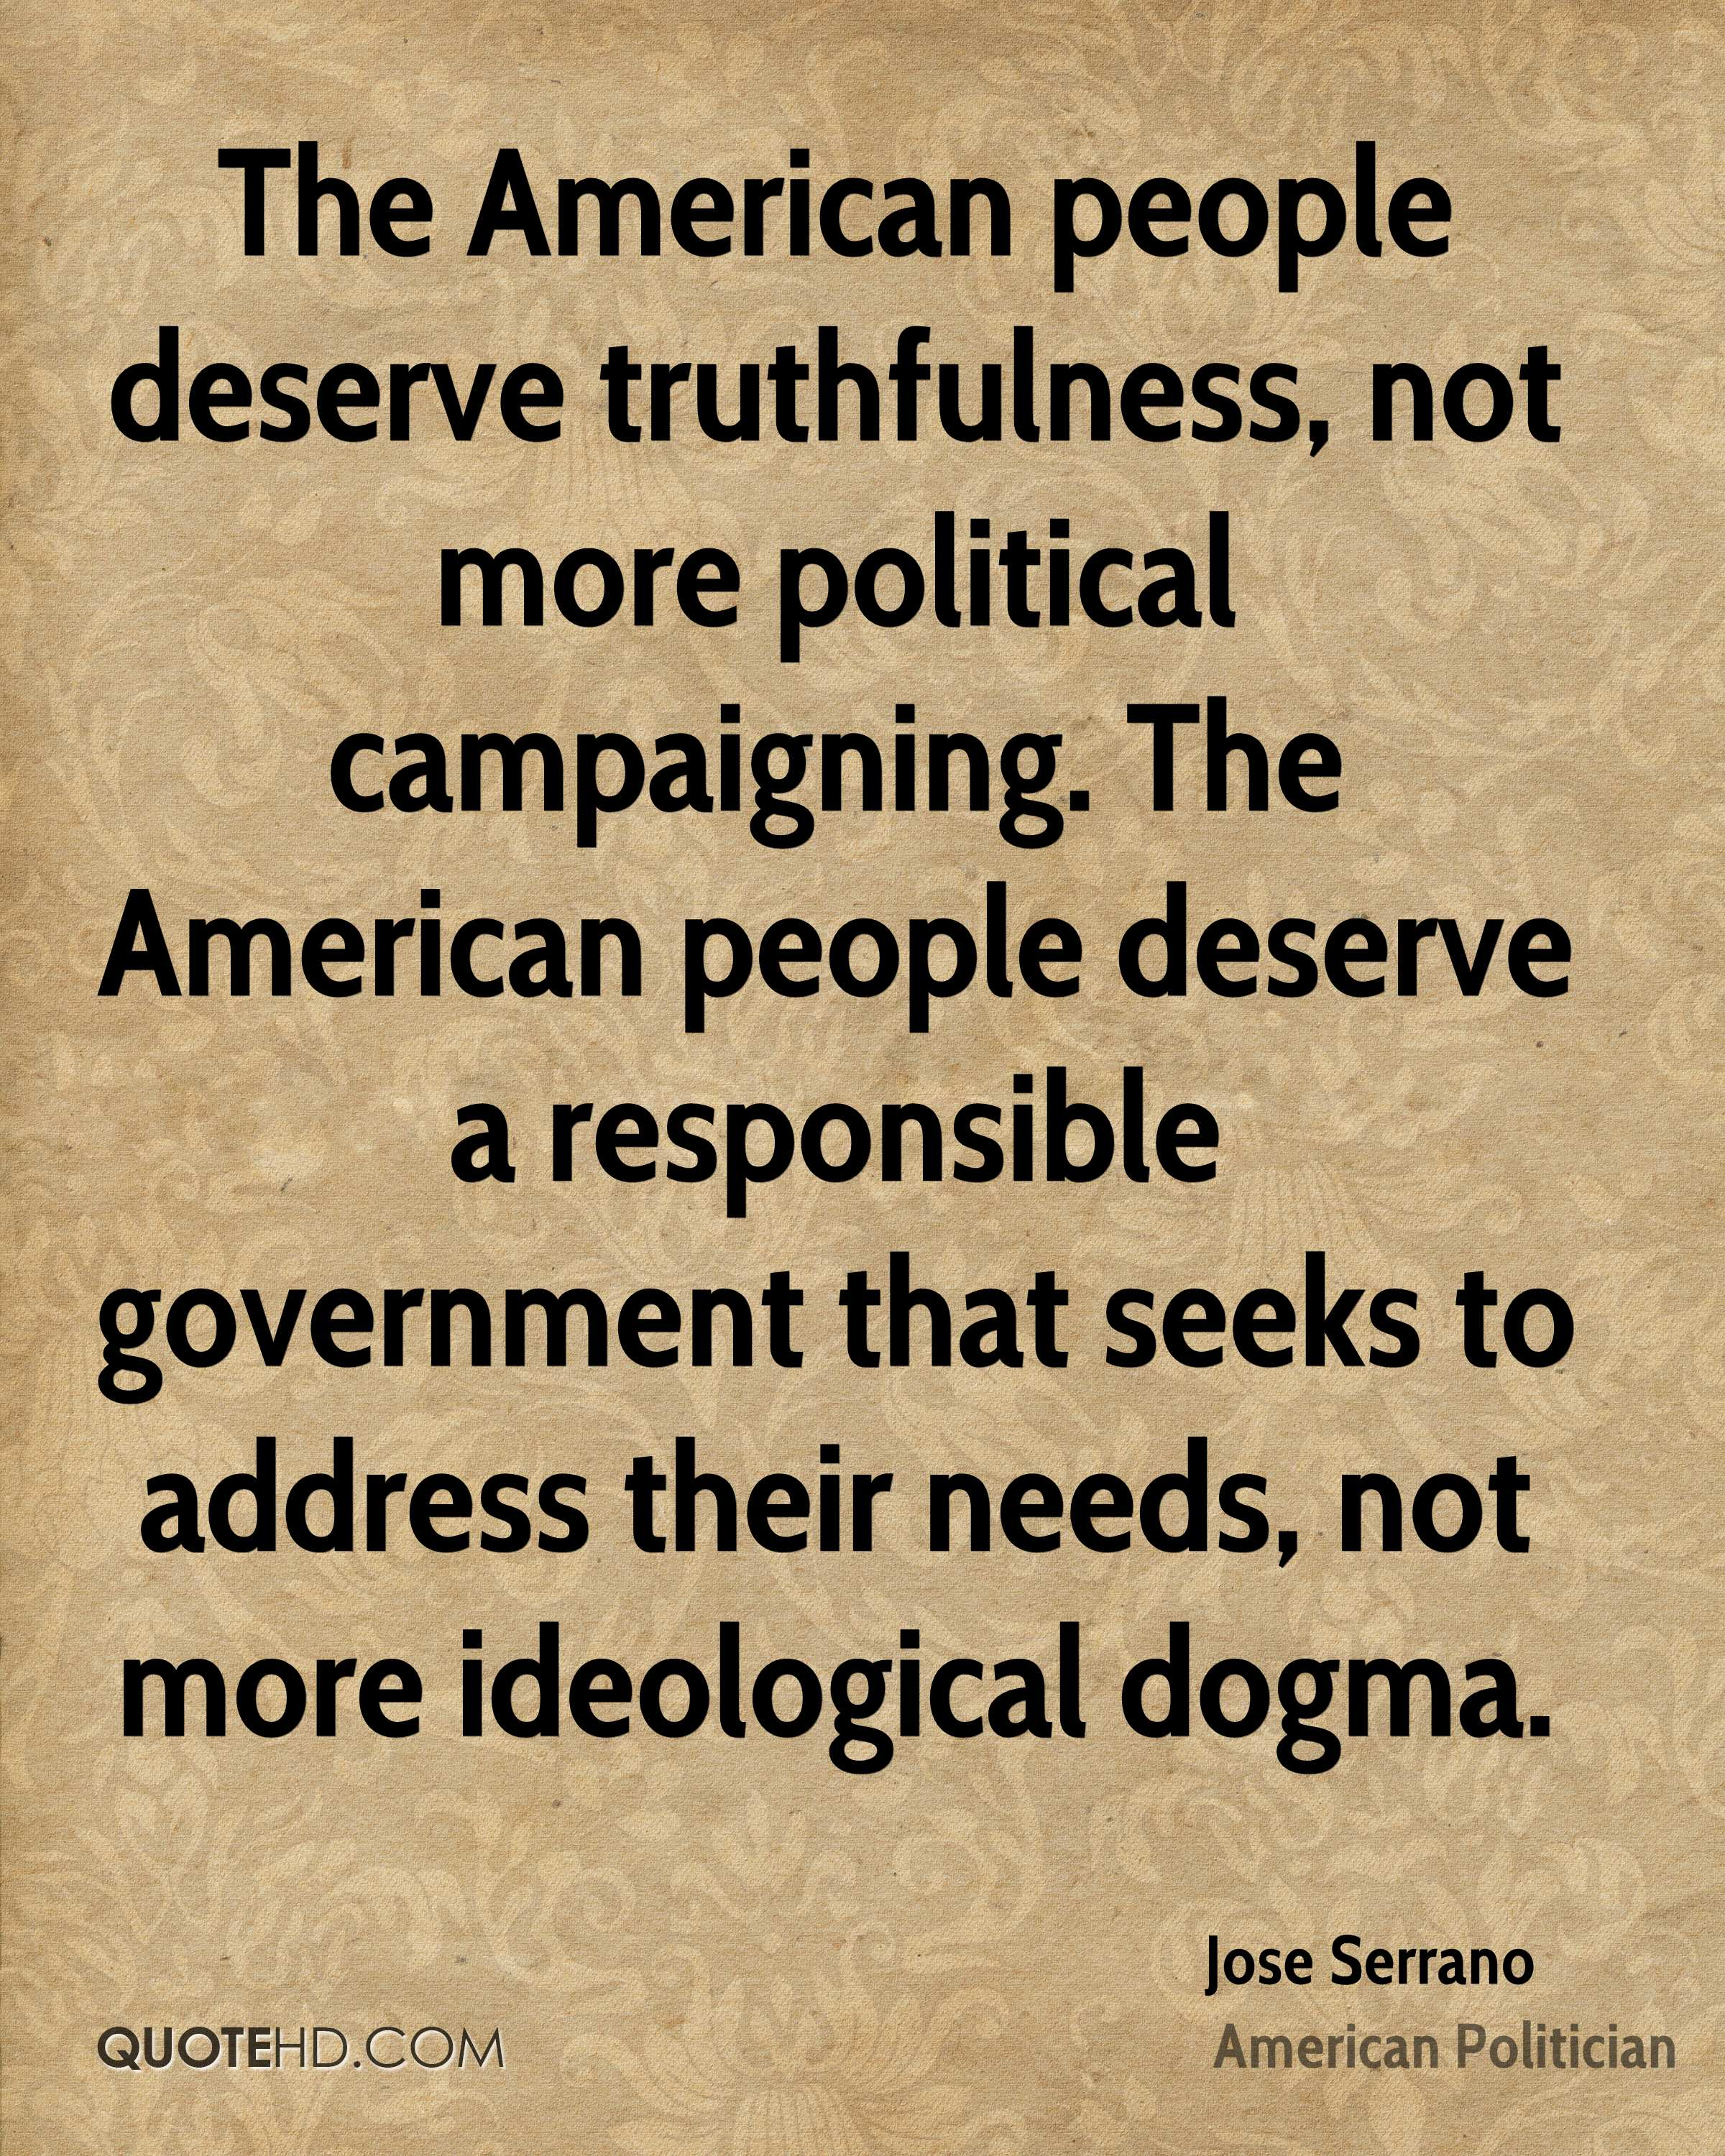 The American people deserve truthfulness, not more political campaigning. The American people deserve a responsible government that seeks to address their needs, not more ideological dogma.